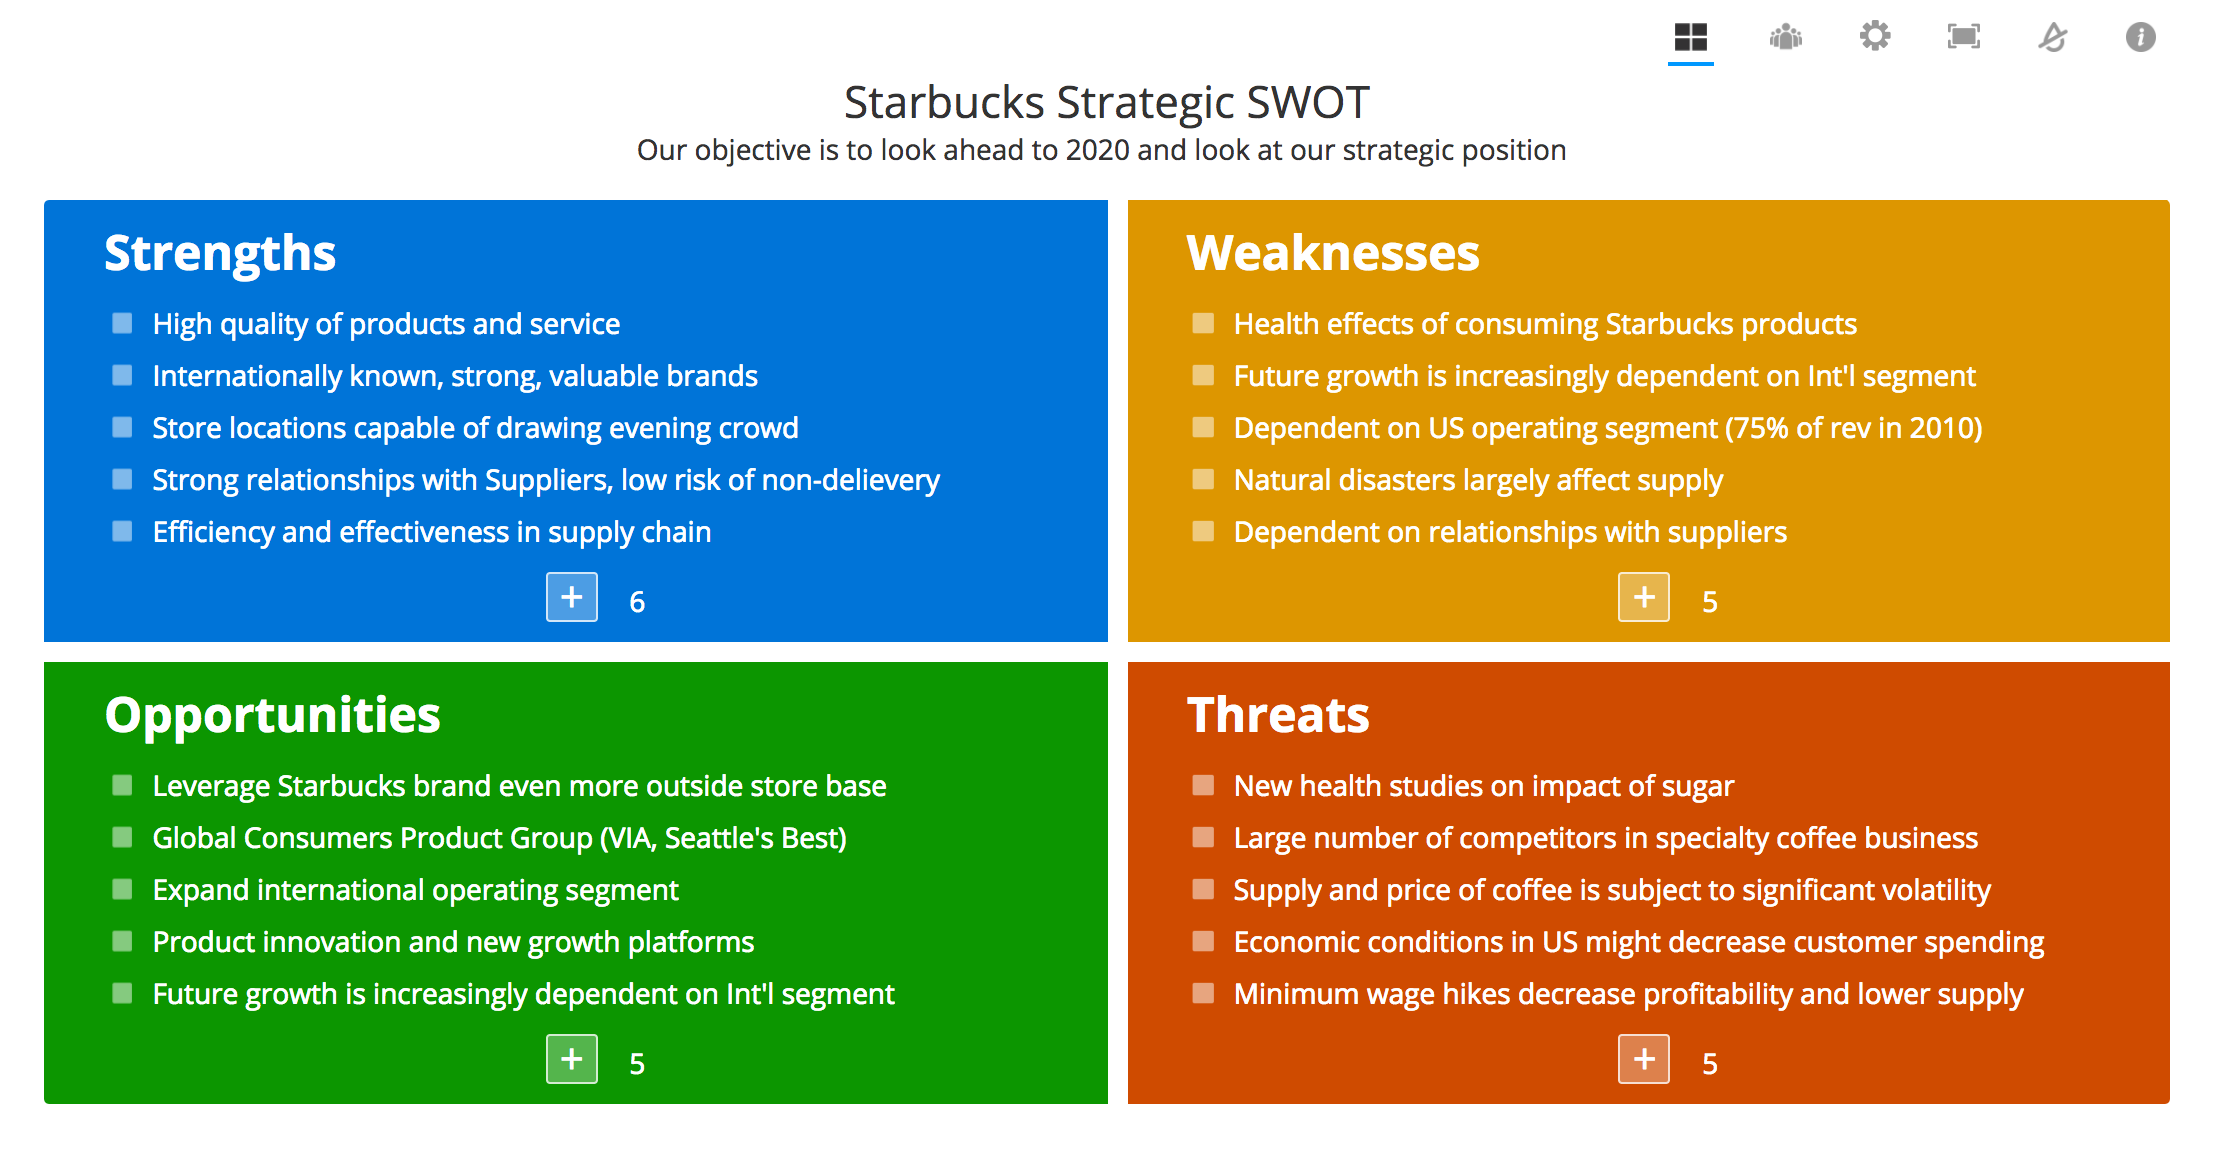 swot analysis for aflac essay example A swot analysis for a restaurant is slightly different compared to other businesses strengths, for example, may lay in the type of food you serve, pricing, friendliness of staff or even the decor.